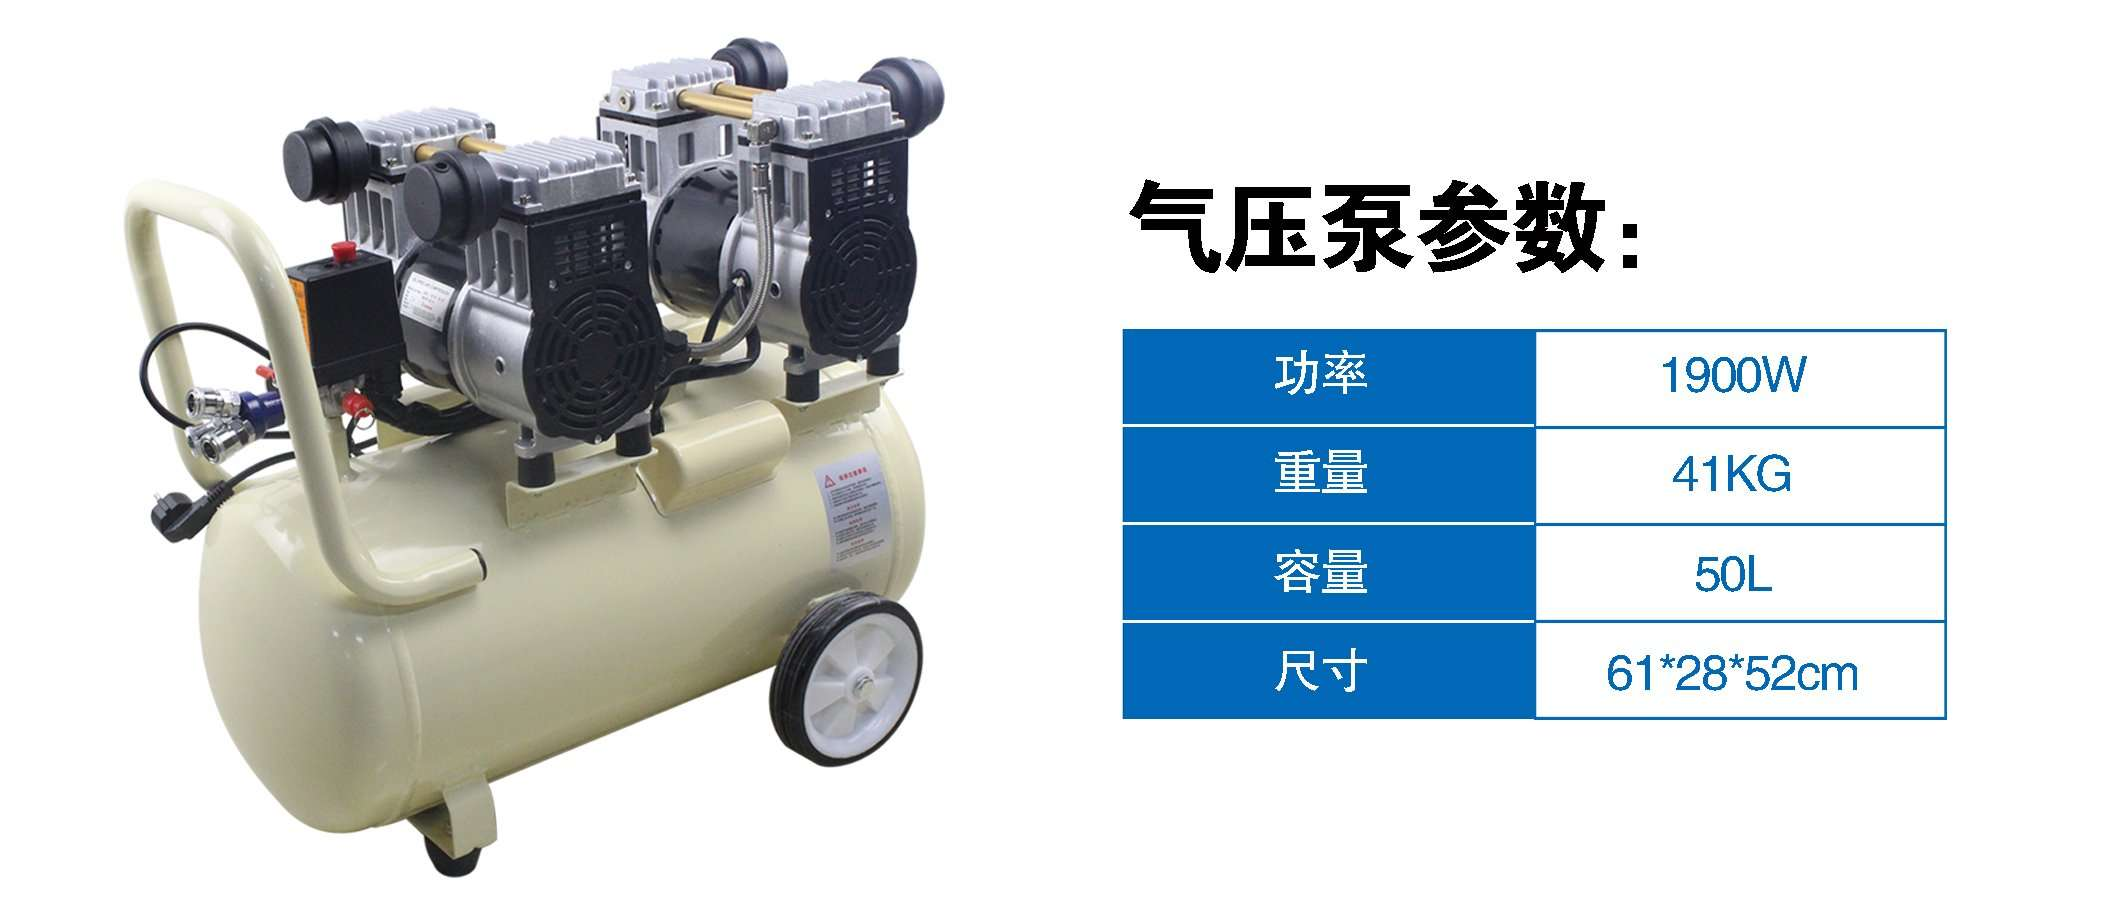 Kitchen Exhaust Grease Ductwork Cleaning Robot 22